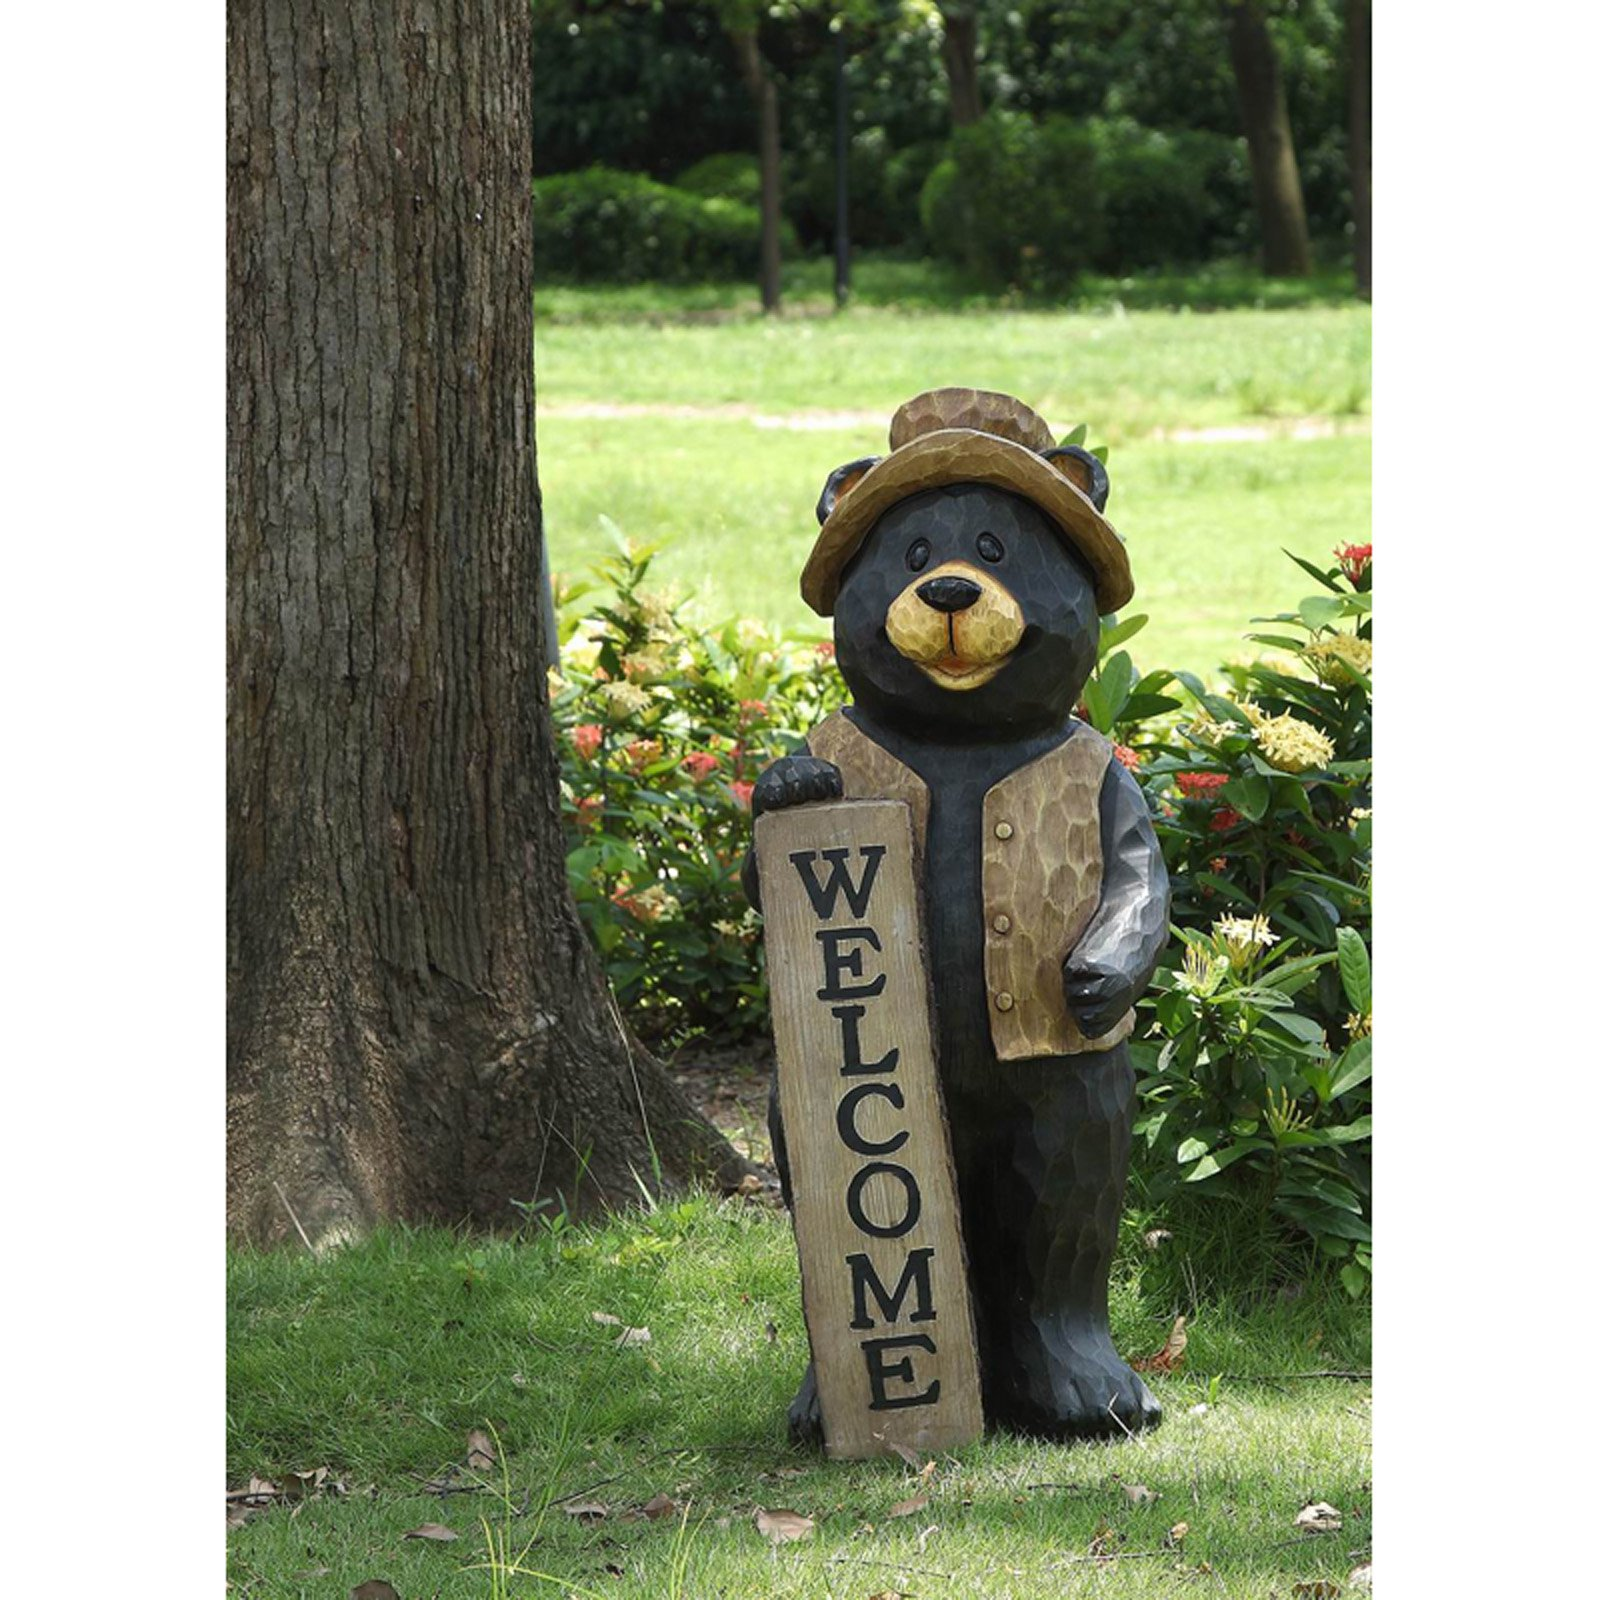 BEAR STANDING WITH A WELCOME SIGN